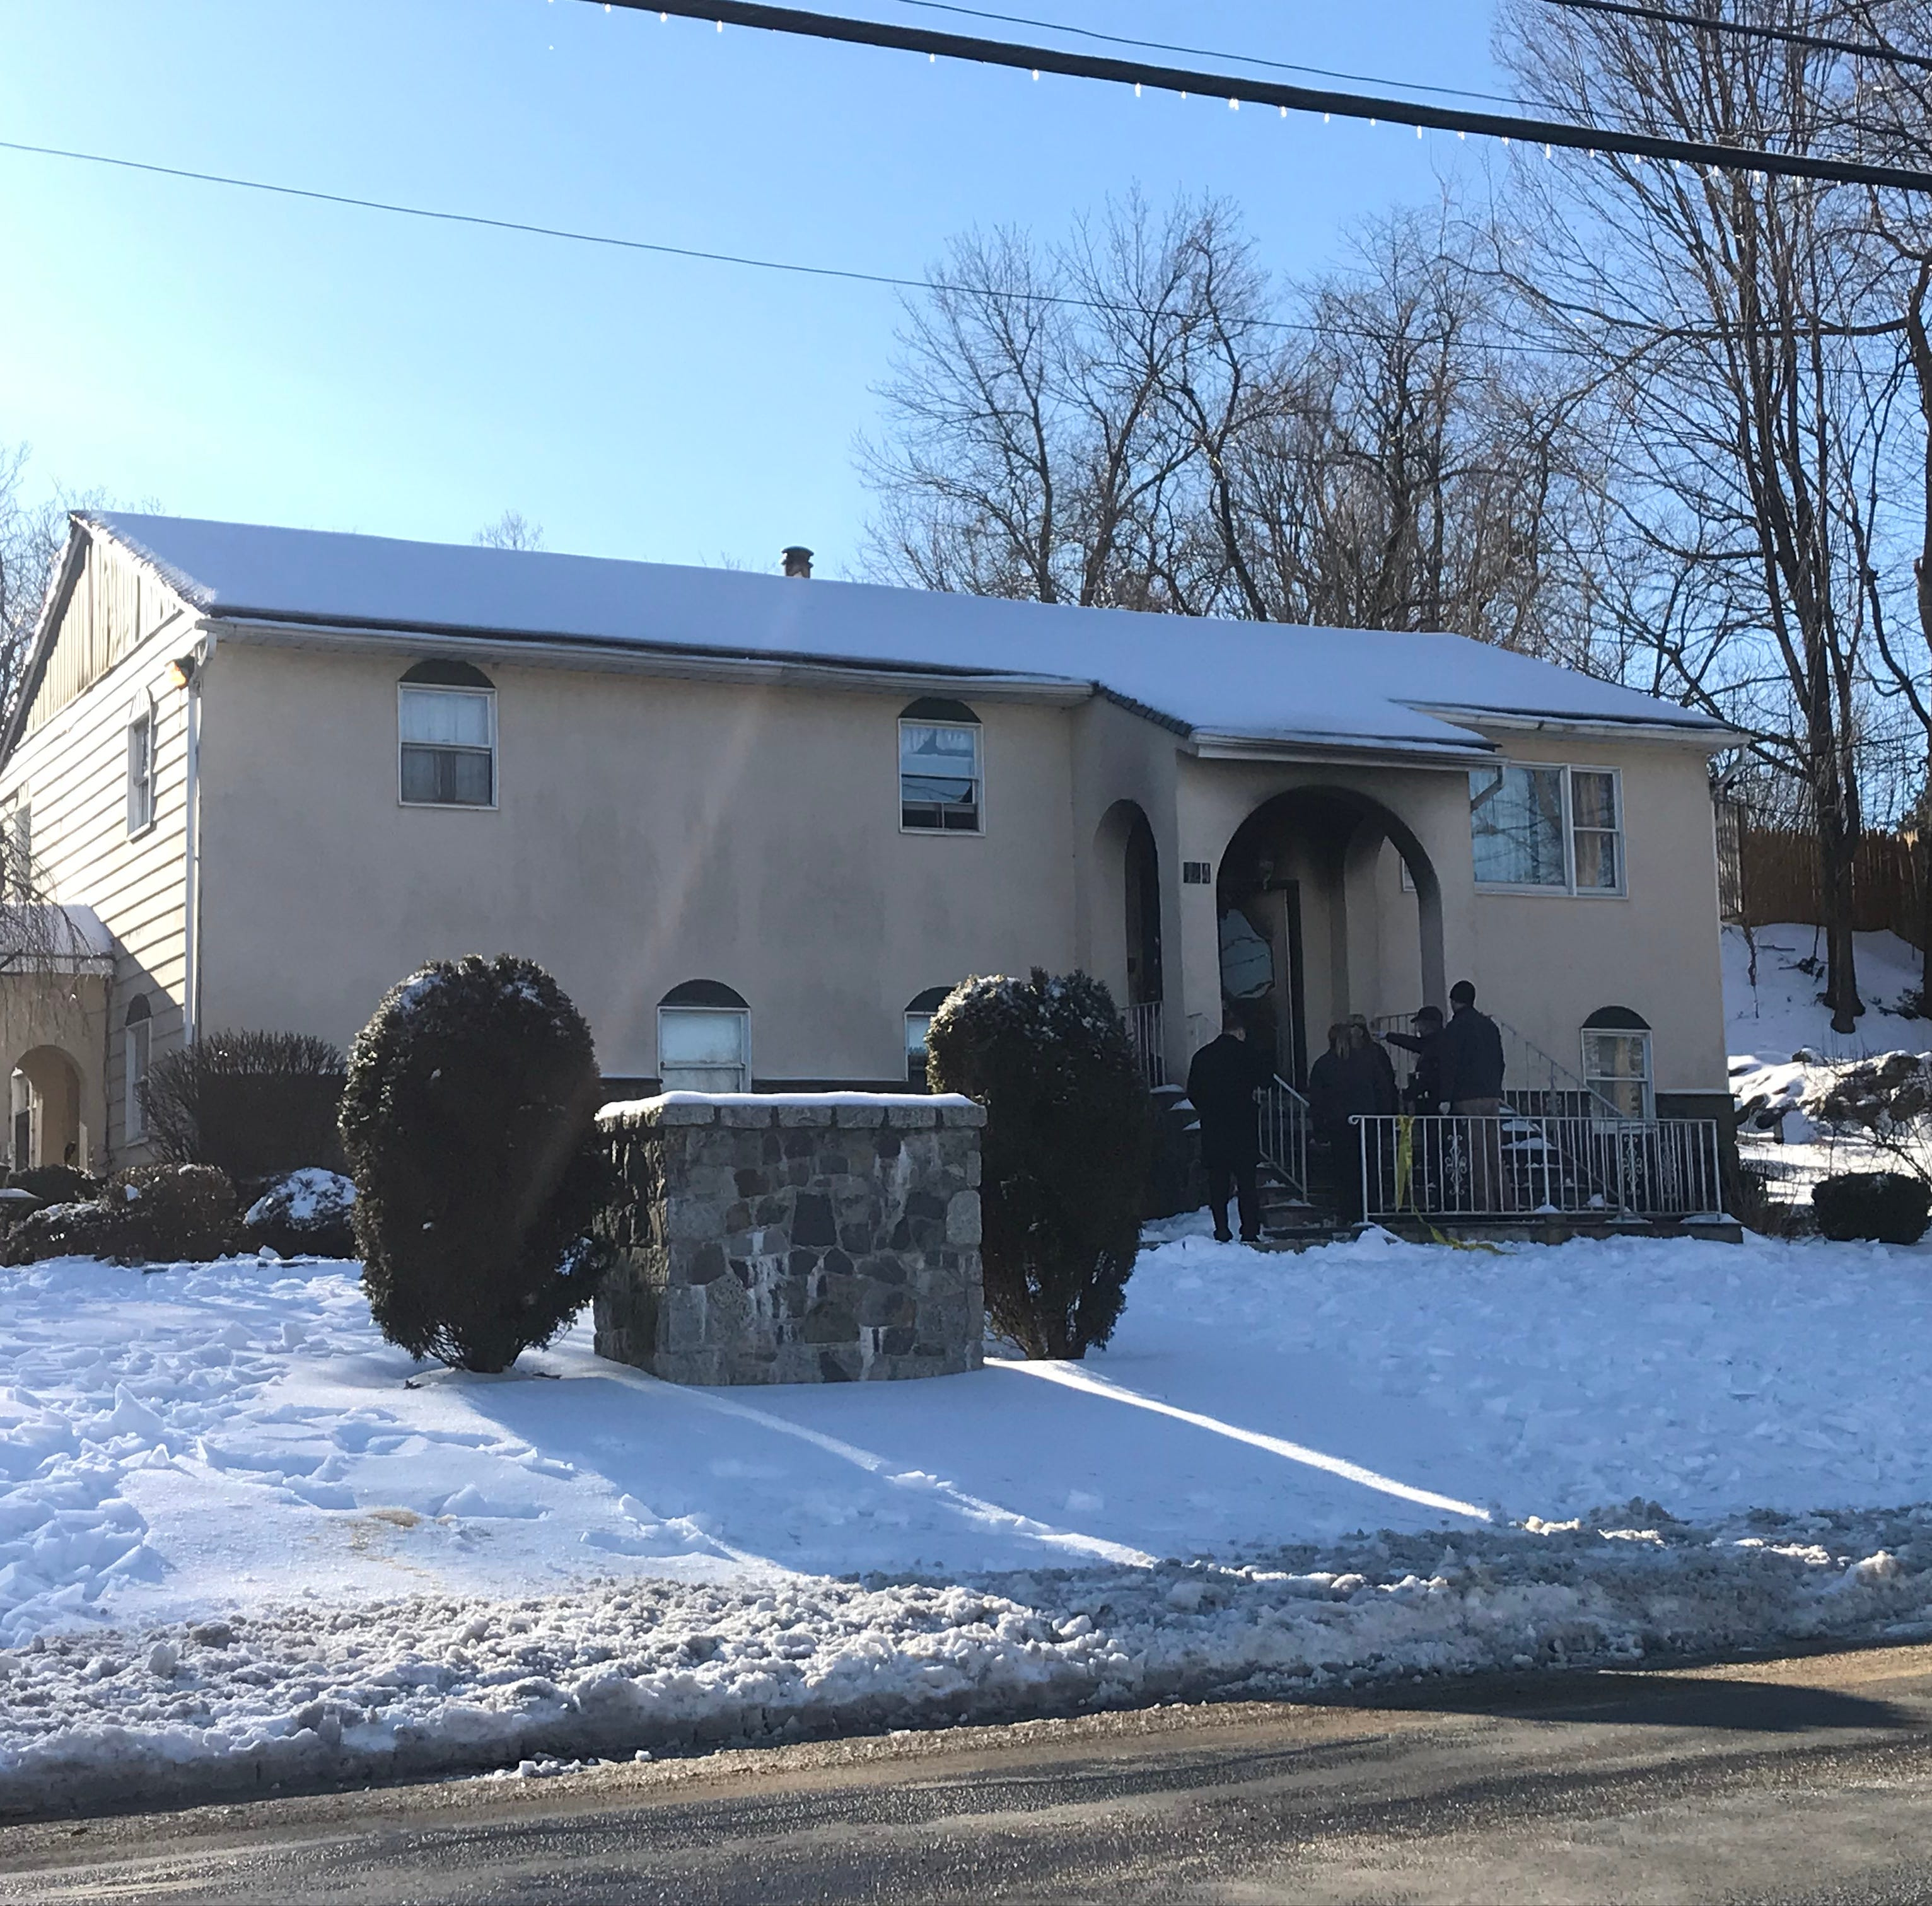 Wappingers Falls house fire under investigation: police